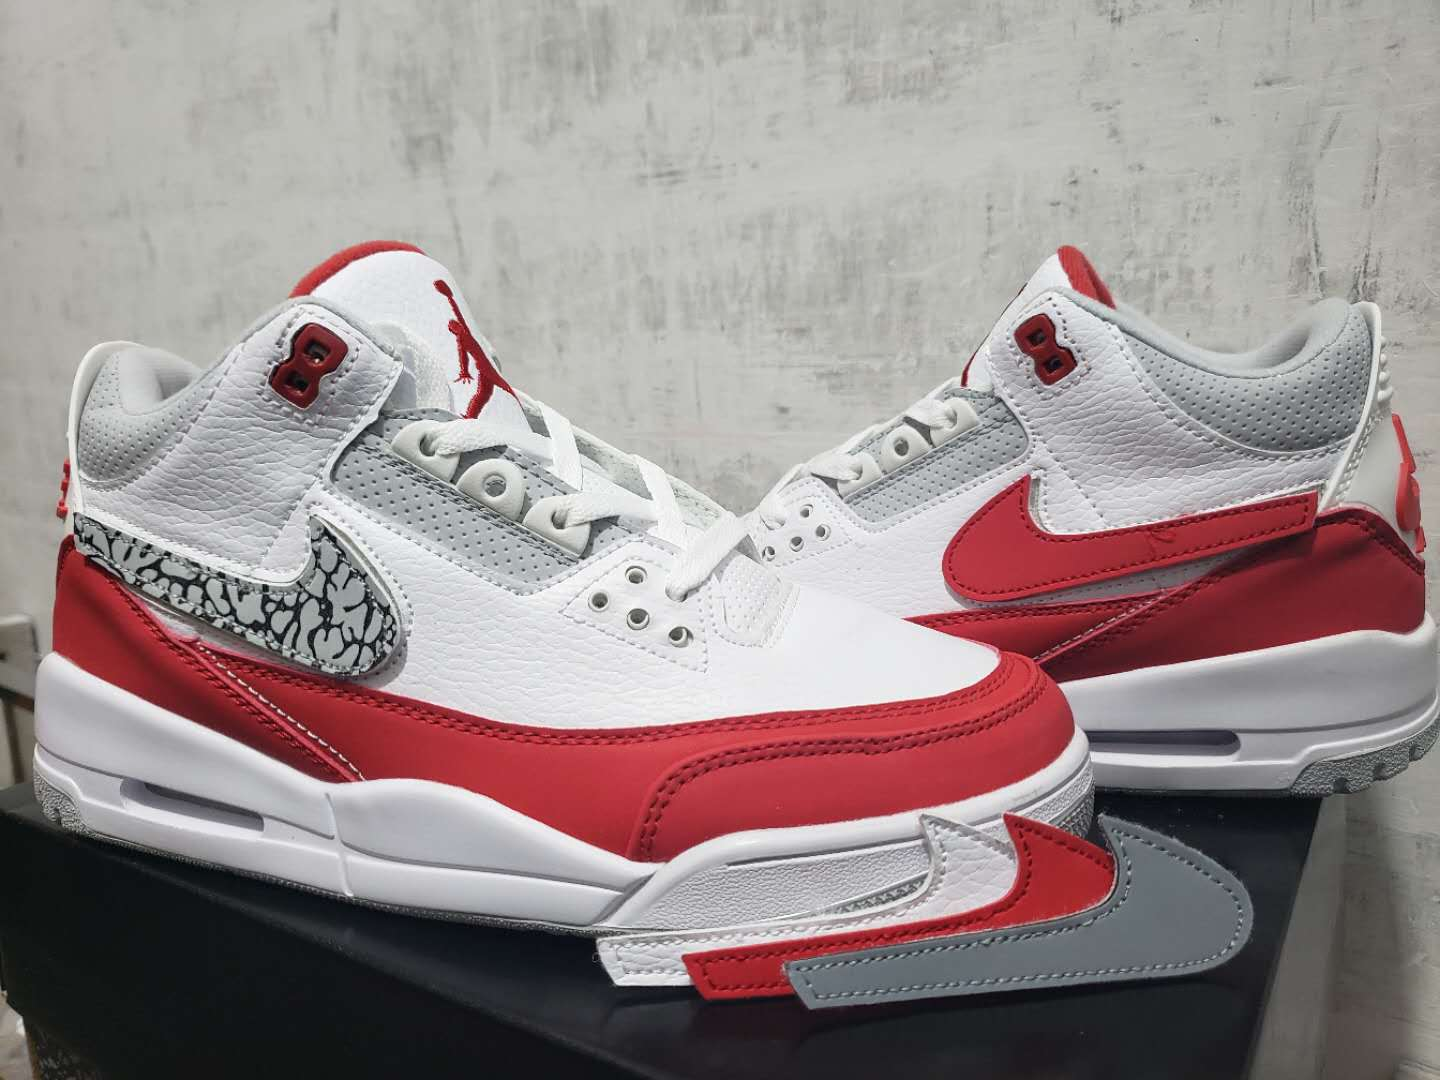 finest selection 39d53 ae1b5 Air Jordan 3 Retro White Red 2019 Mens Retro Jordans 3s Shoes SD1 -  Getfashionsstore.